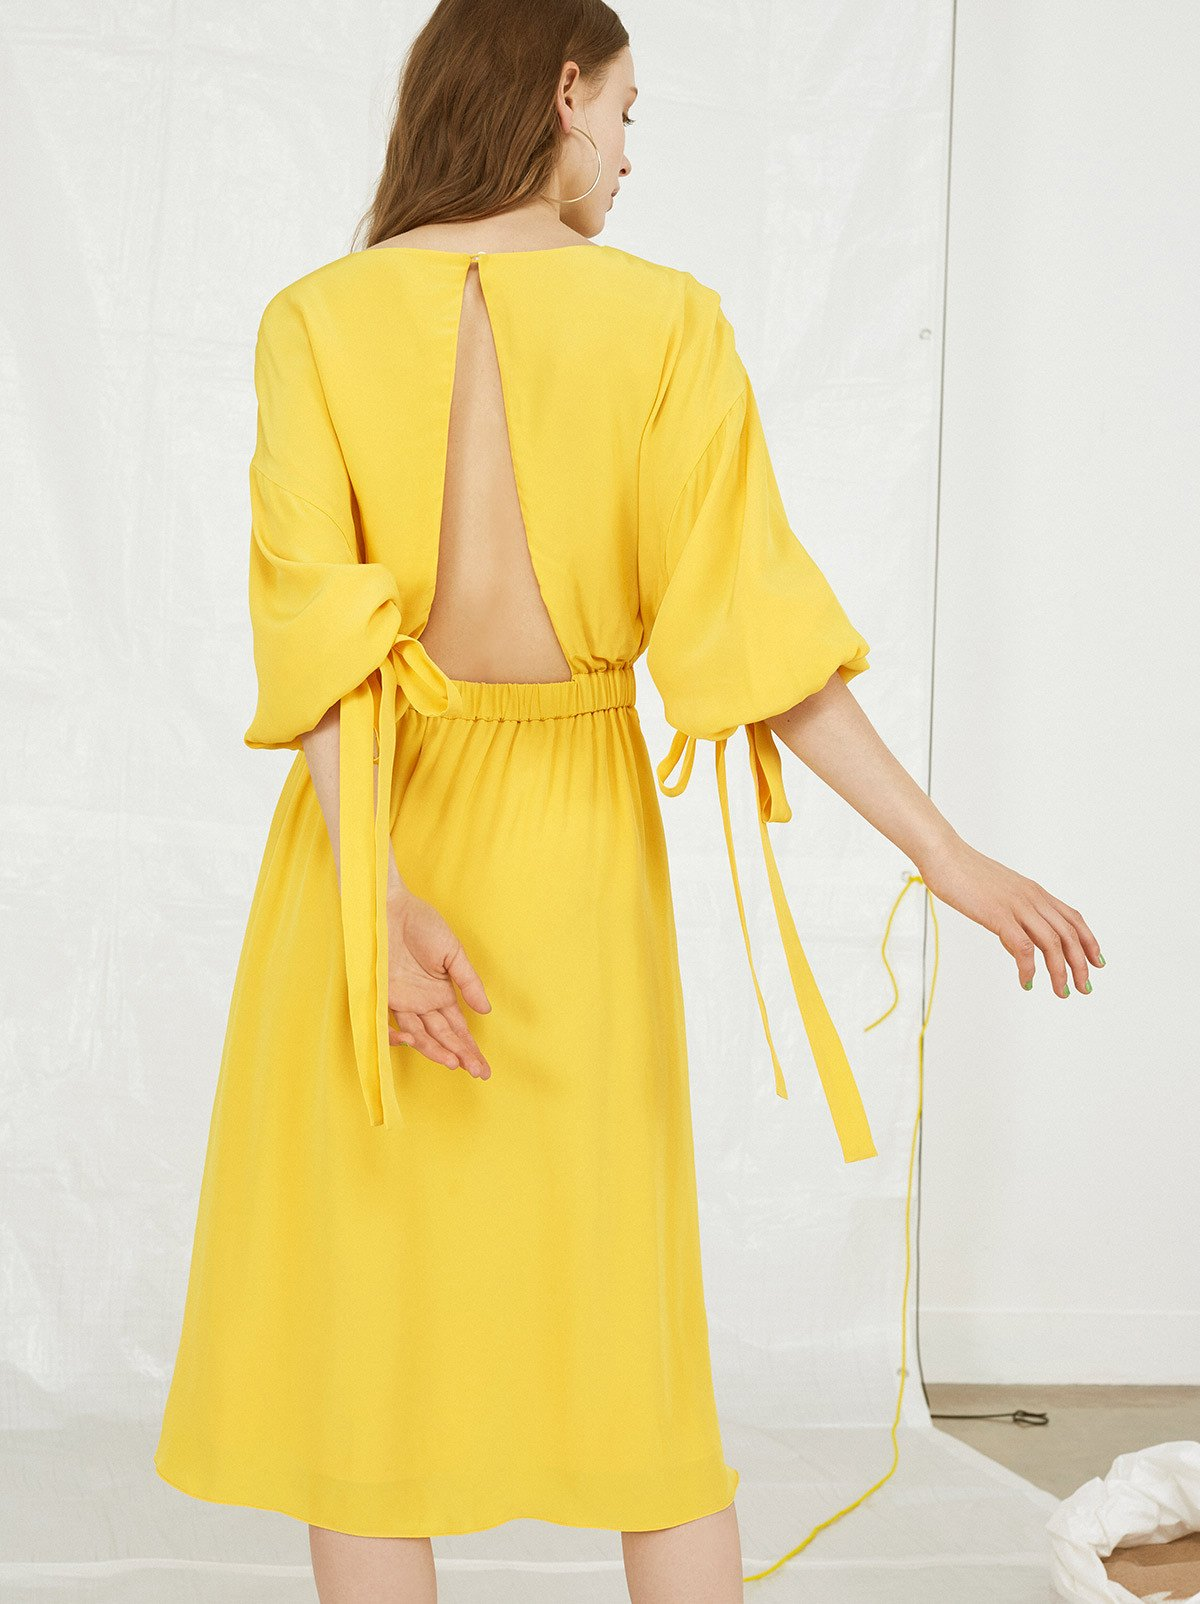 Titania Sunshine Dress